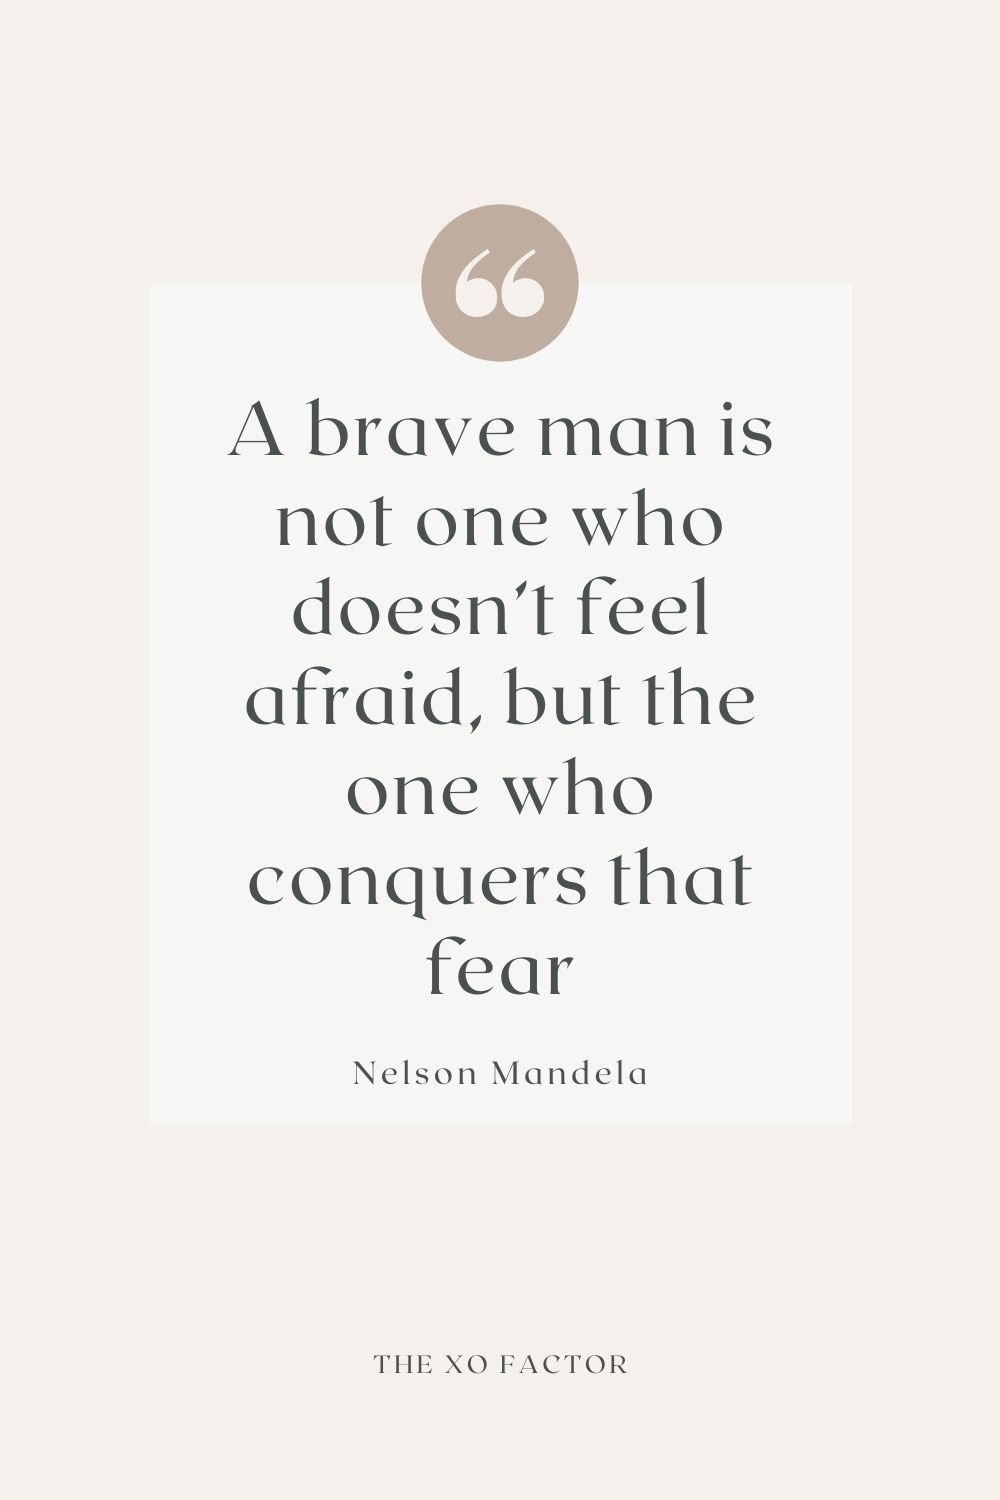 a brave man is not one who doesn't feel afraid, but the one who conquers that fear -Nelson Mandela